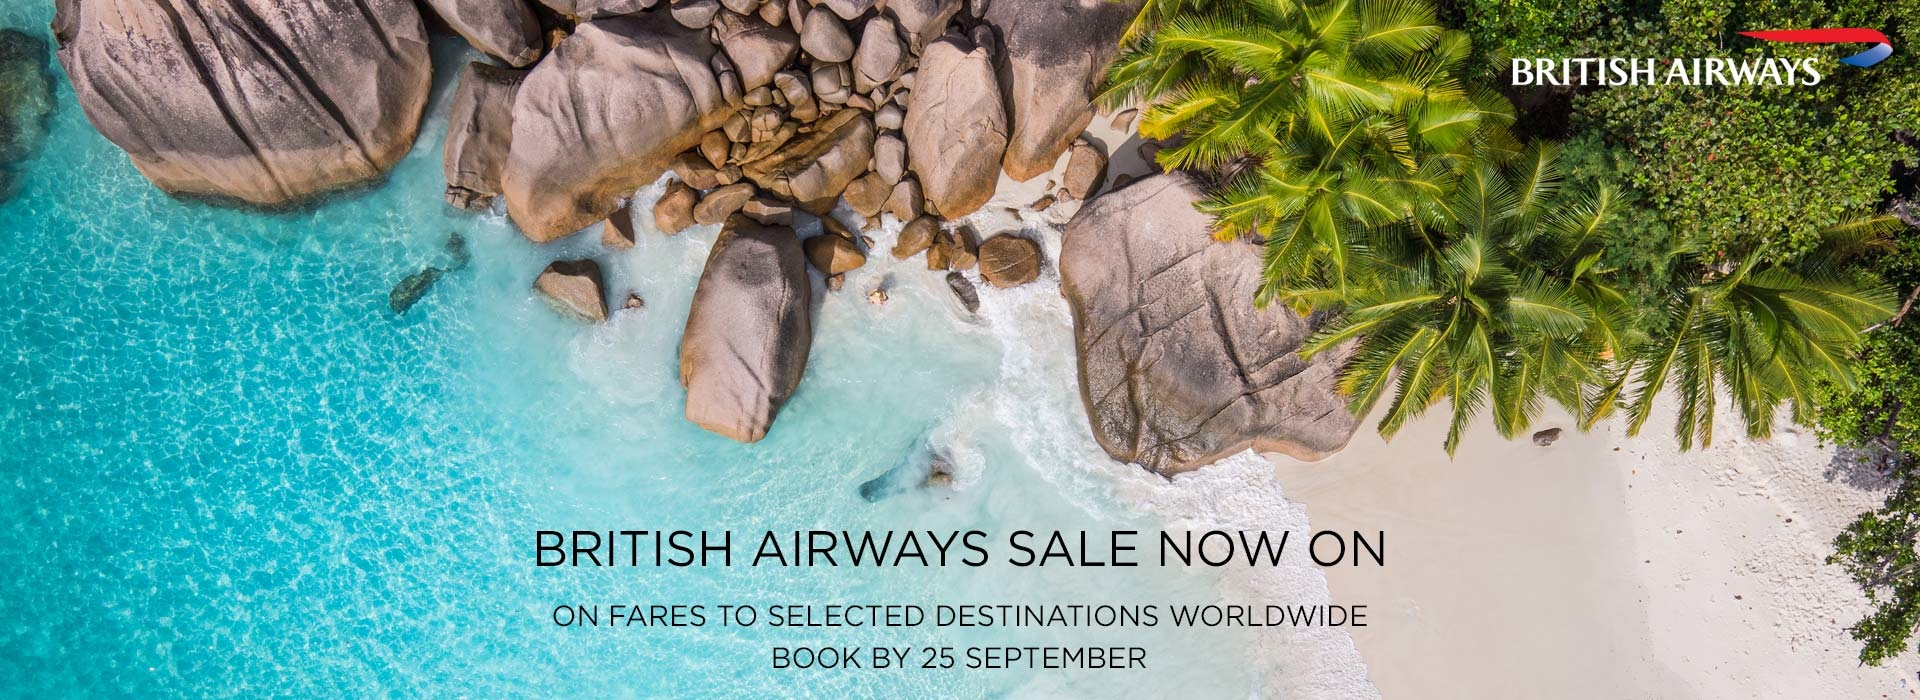 British Airways Sale 2018